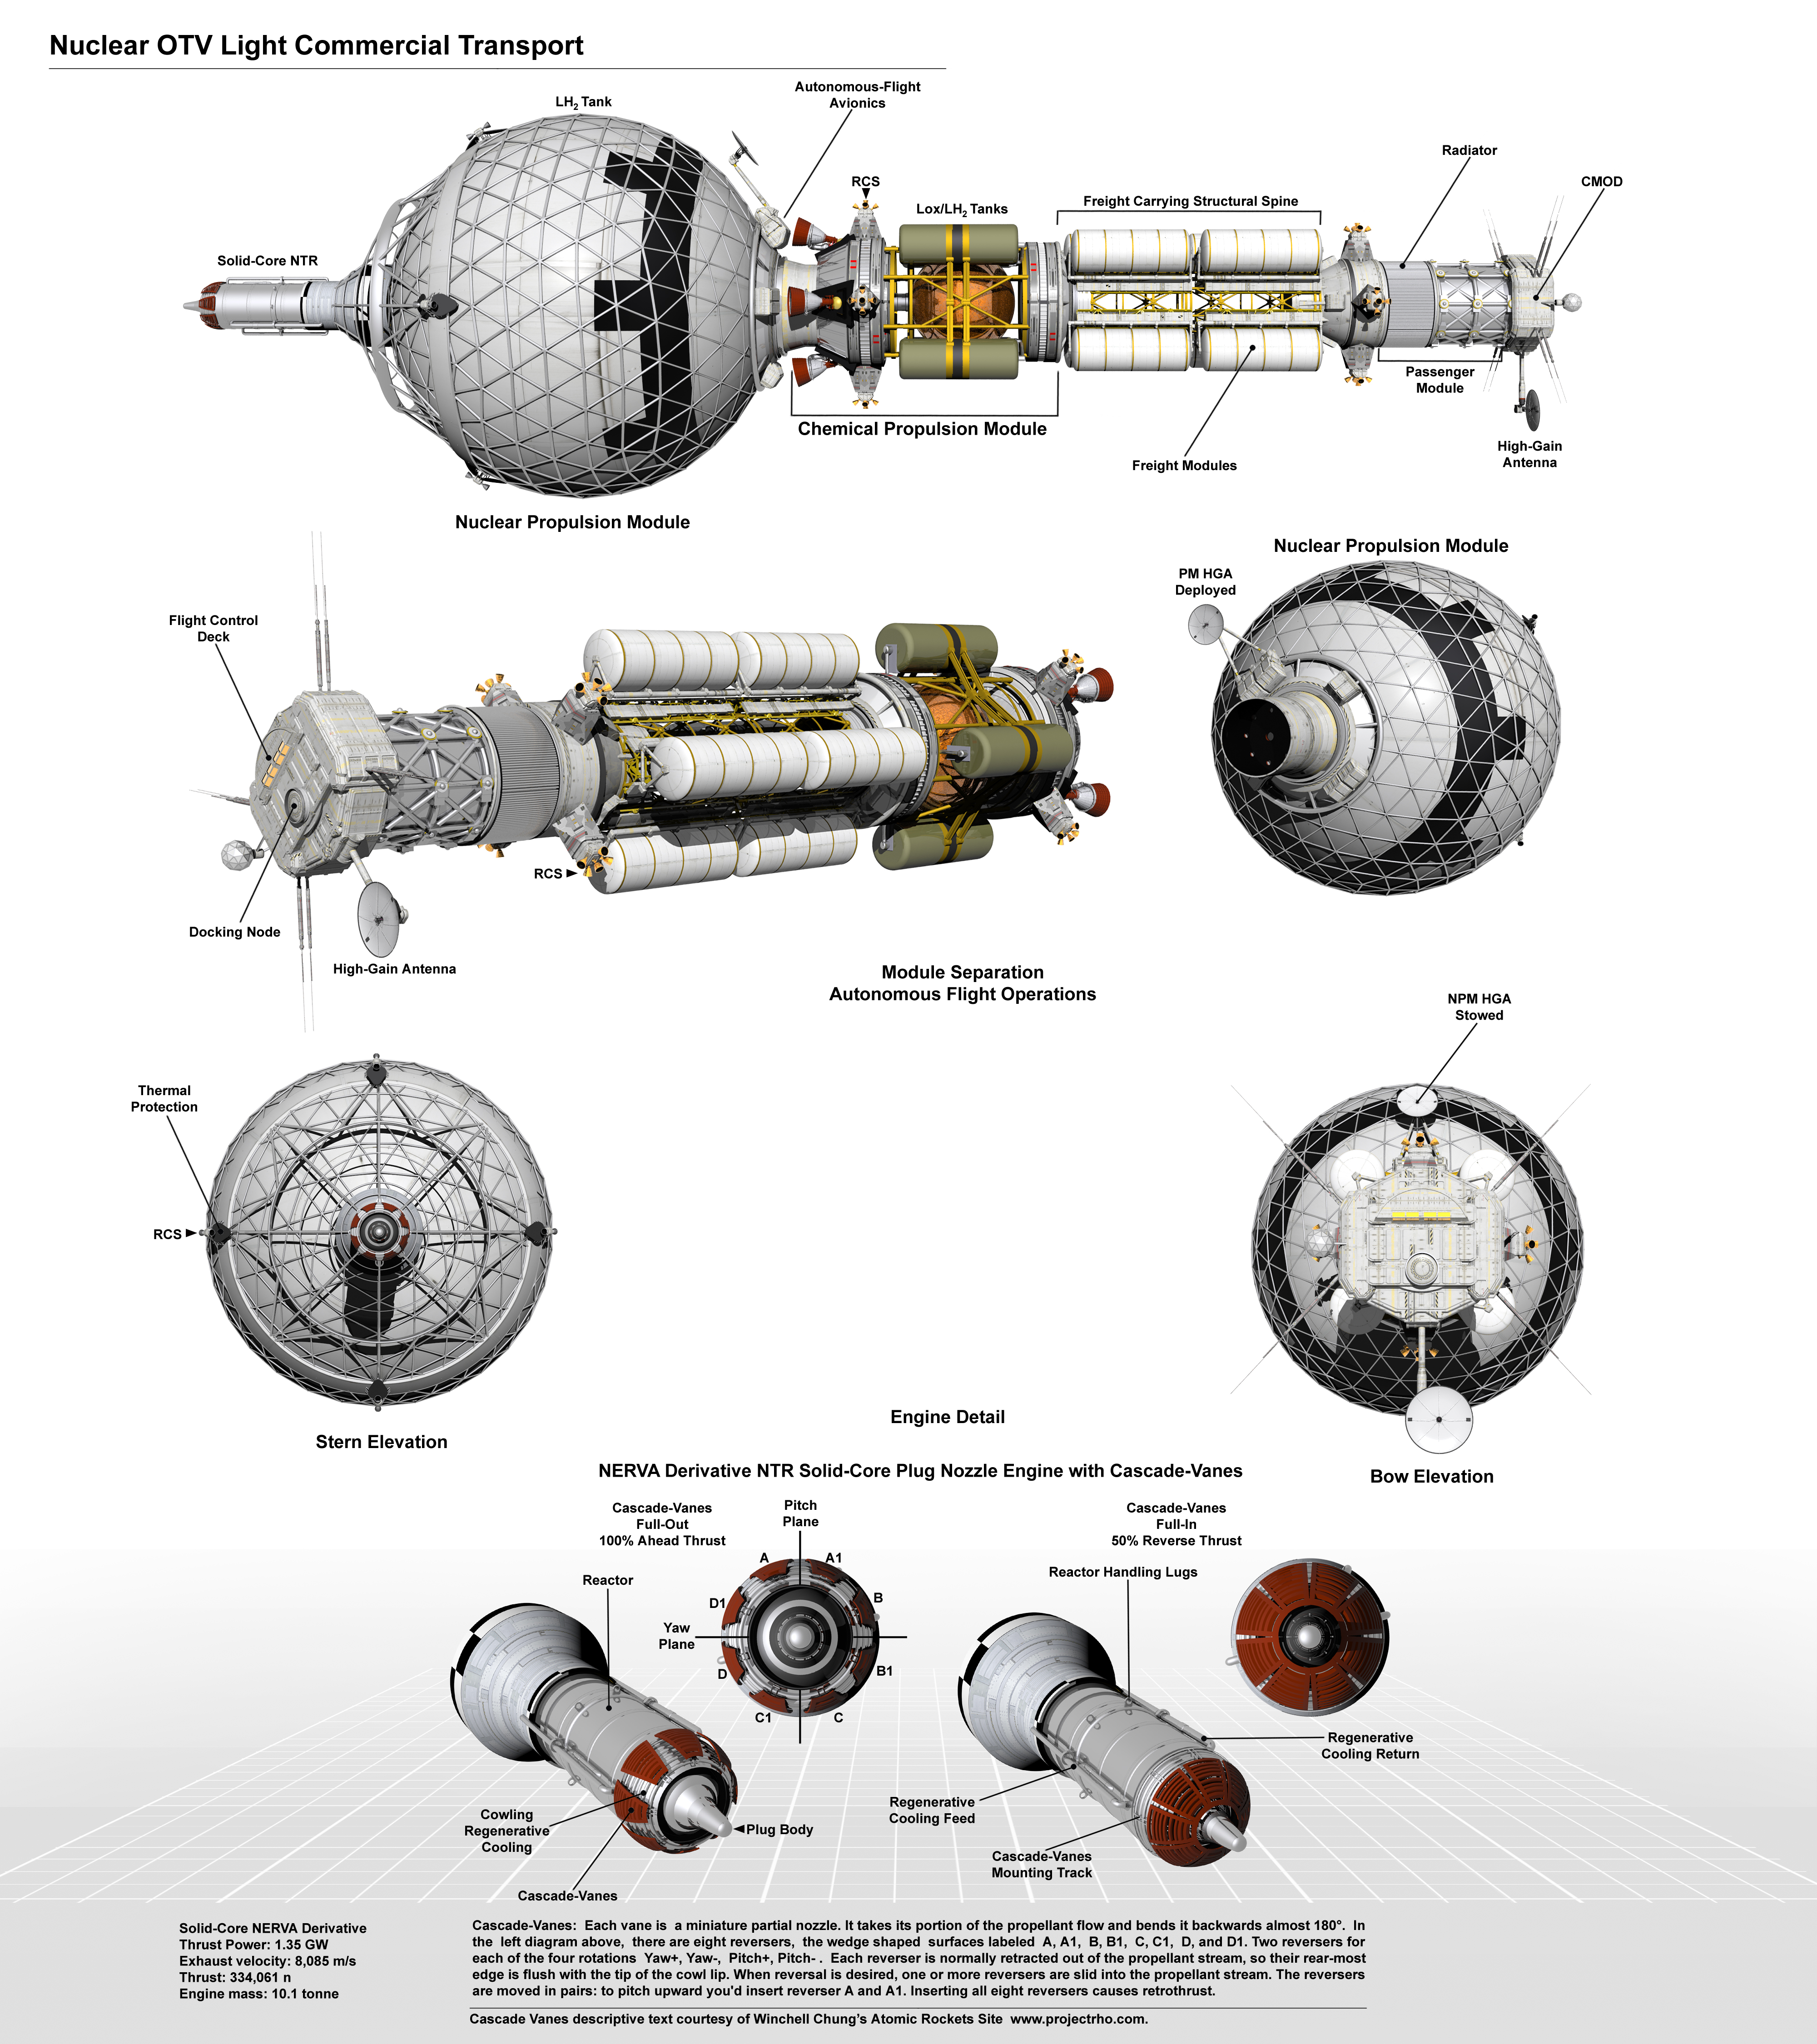 nuclear otv commercial transport diagram by william black on deviantart